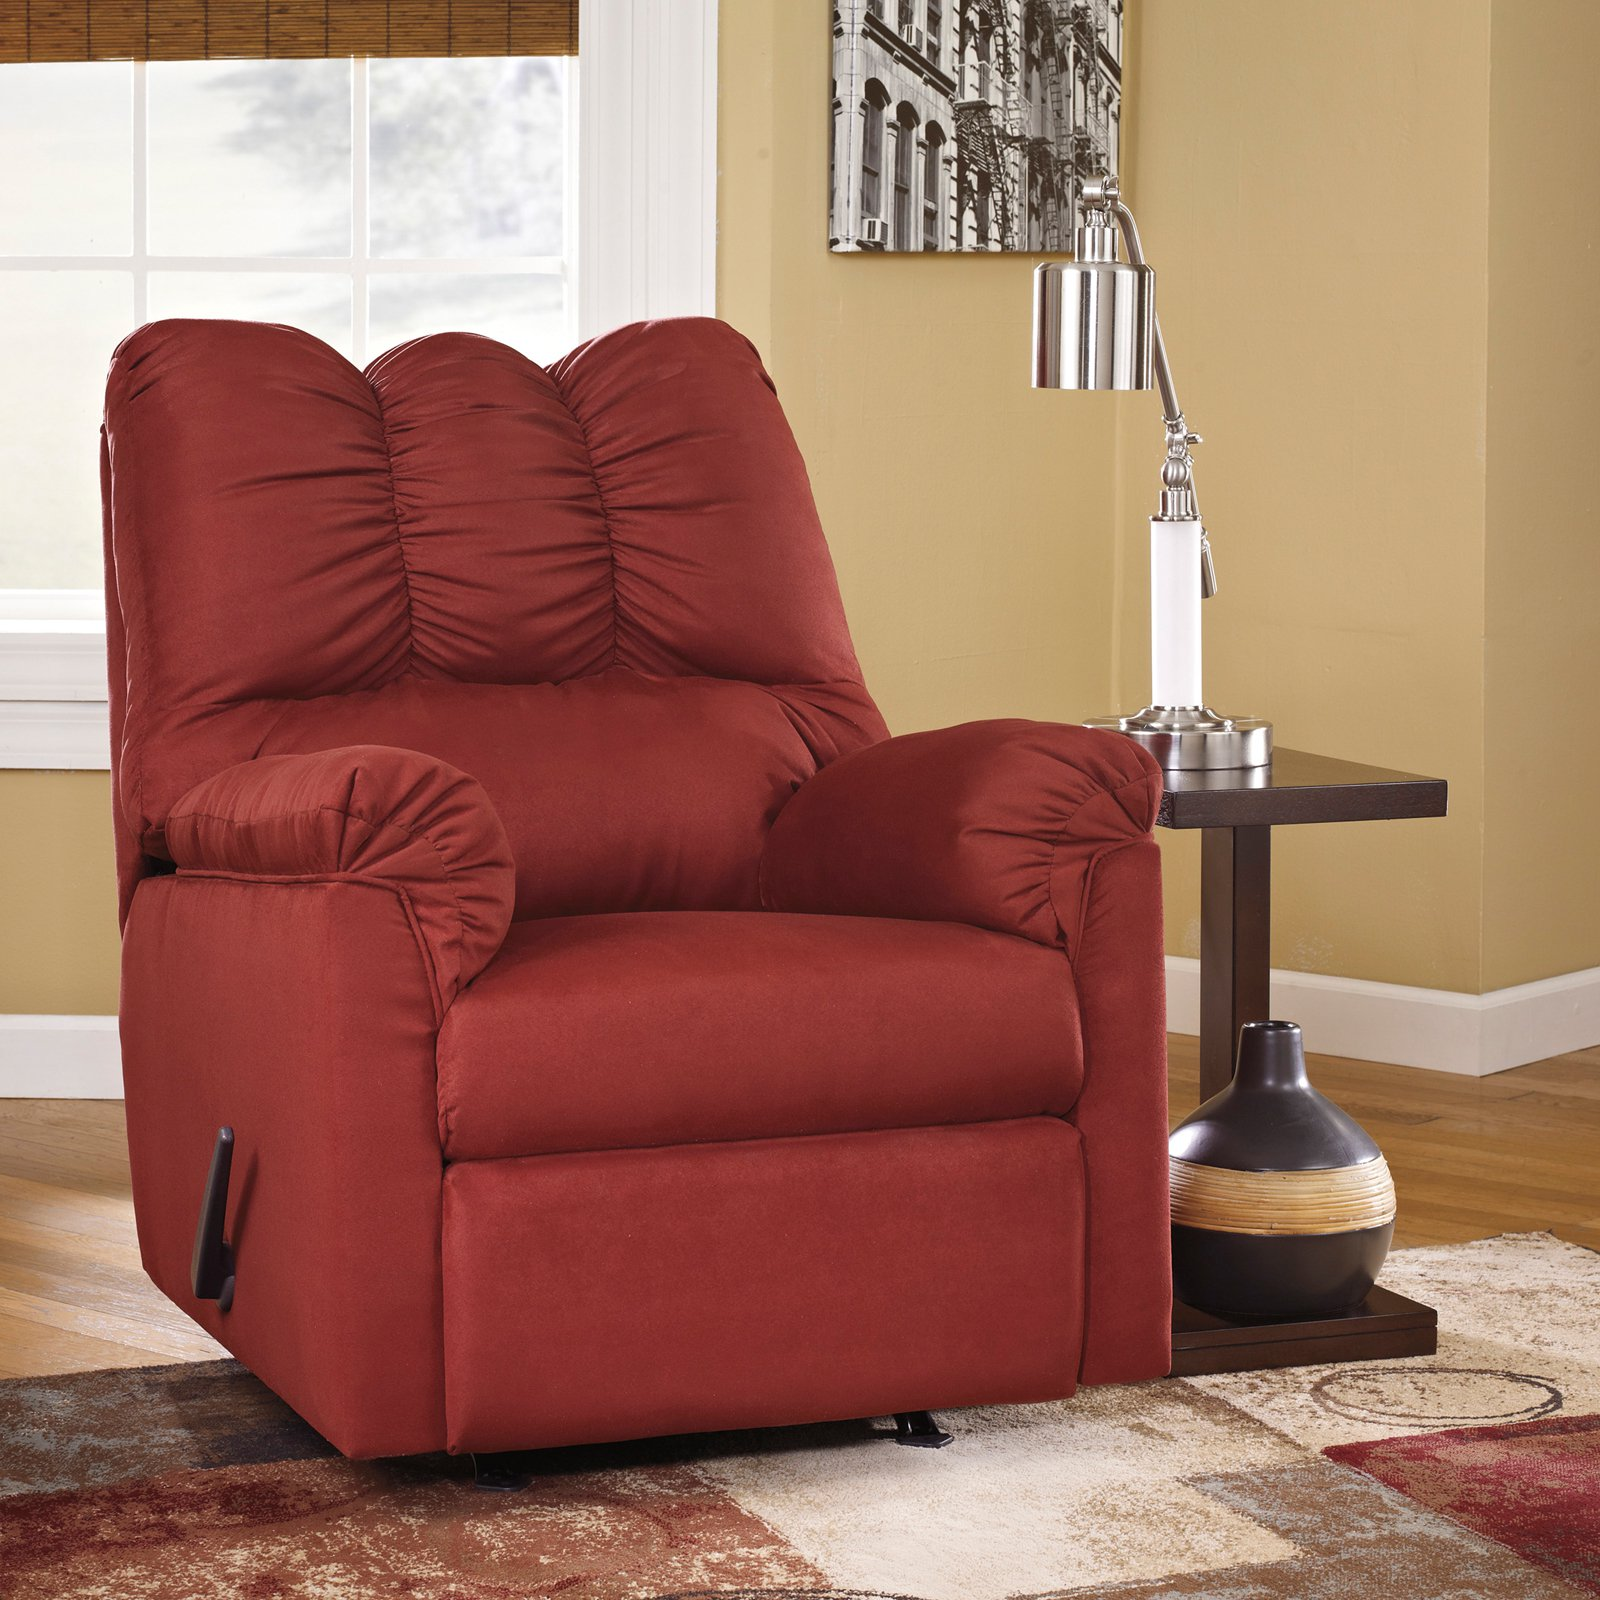 Signature Design by Ashley Darcy Fabric Rocker Recliner